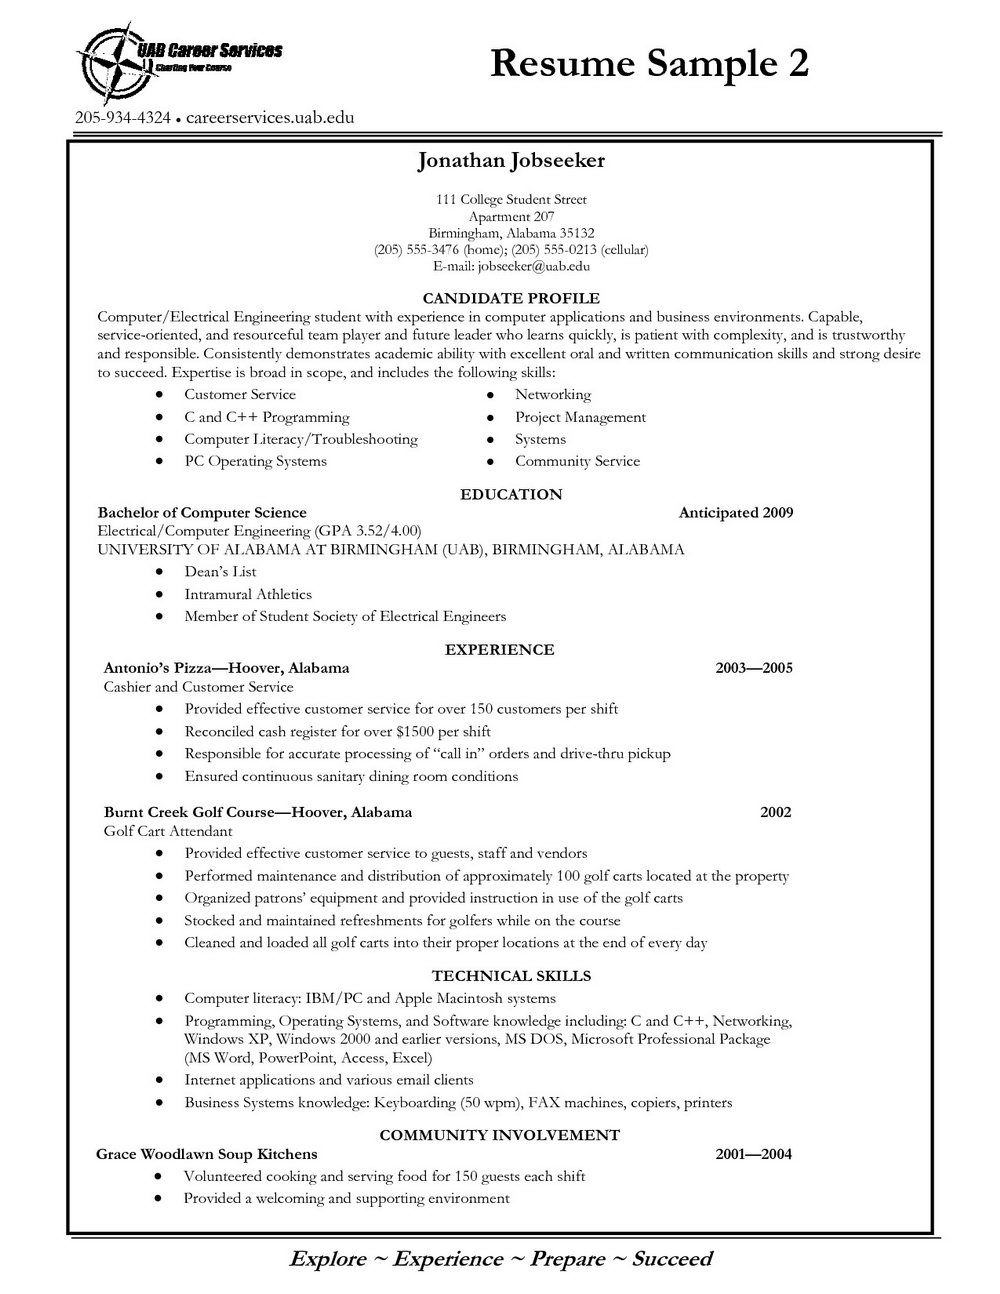 Templates For Resumes Google Docs